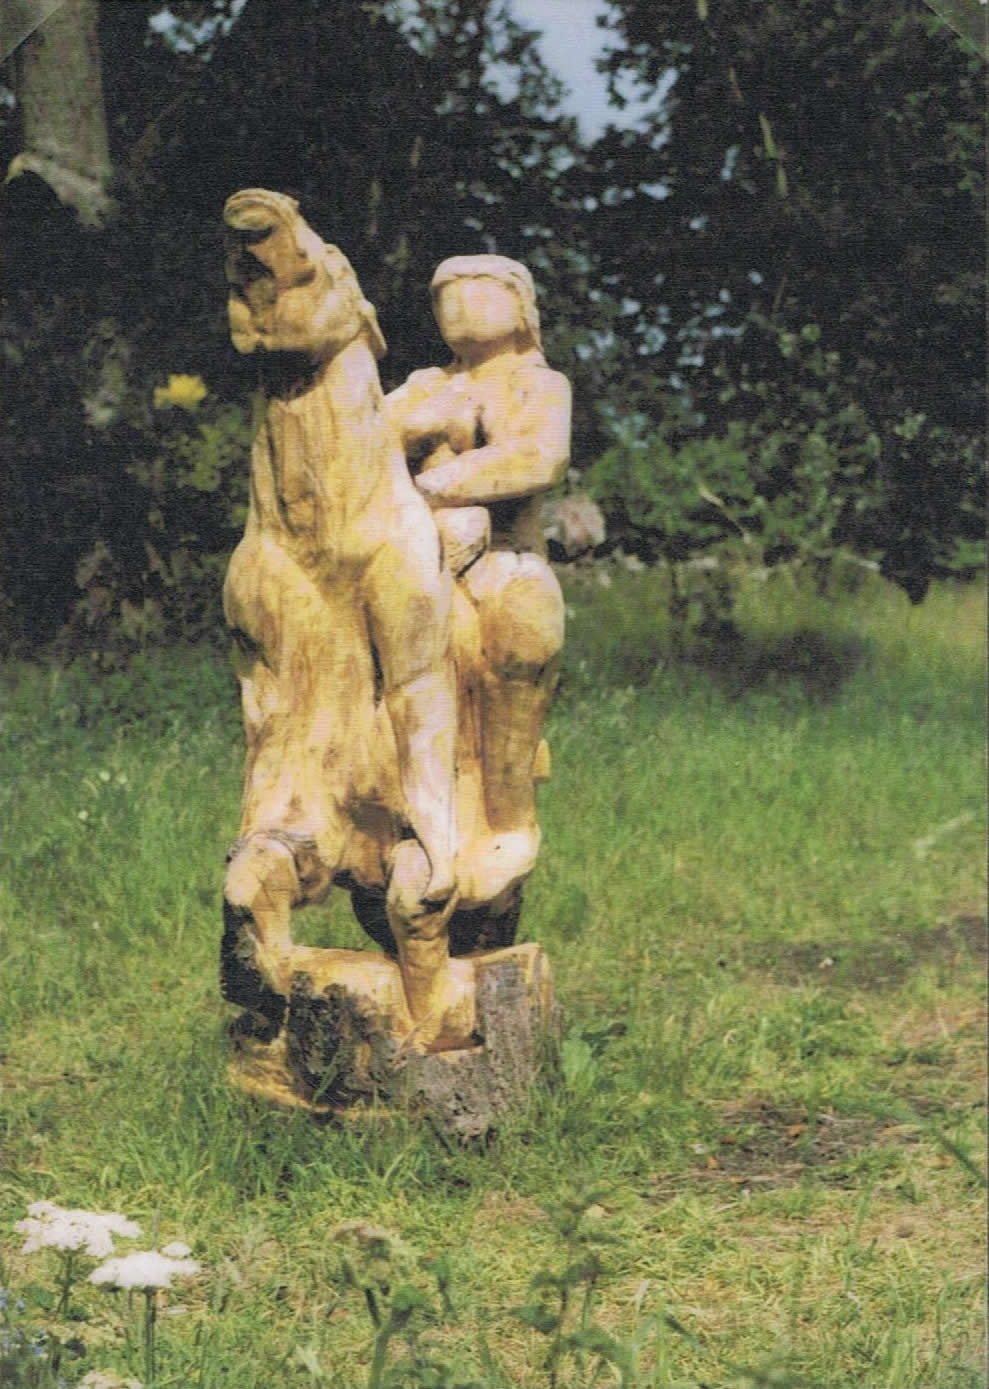 Lady on horse, carved in wood